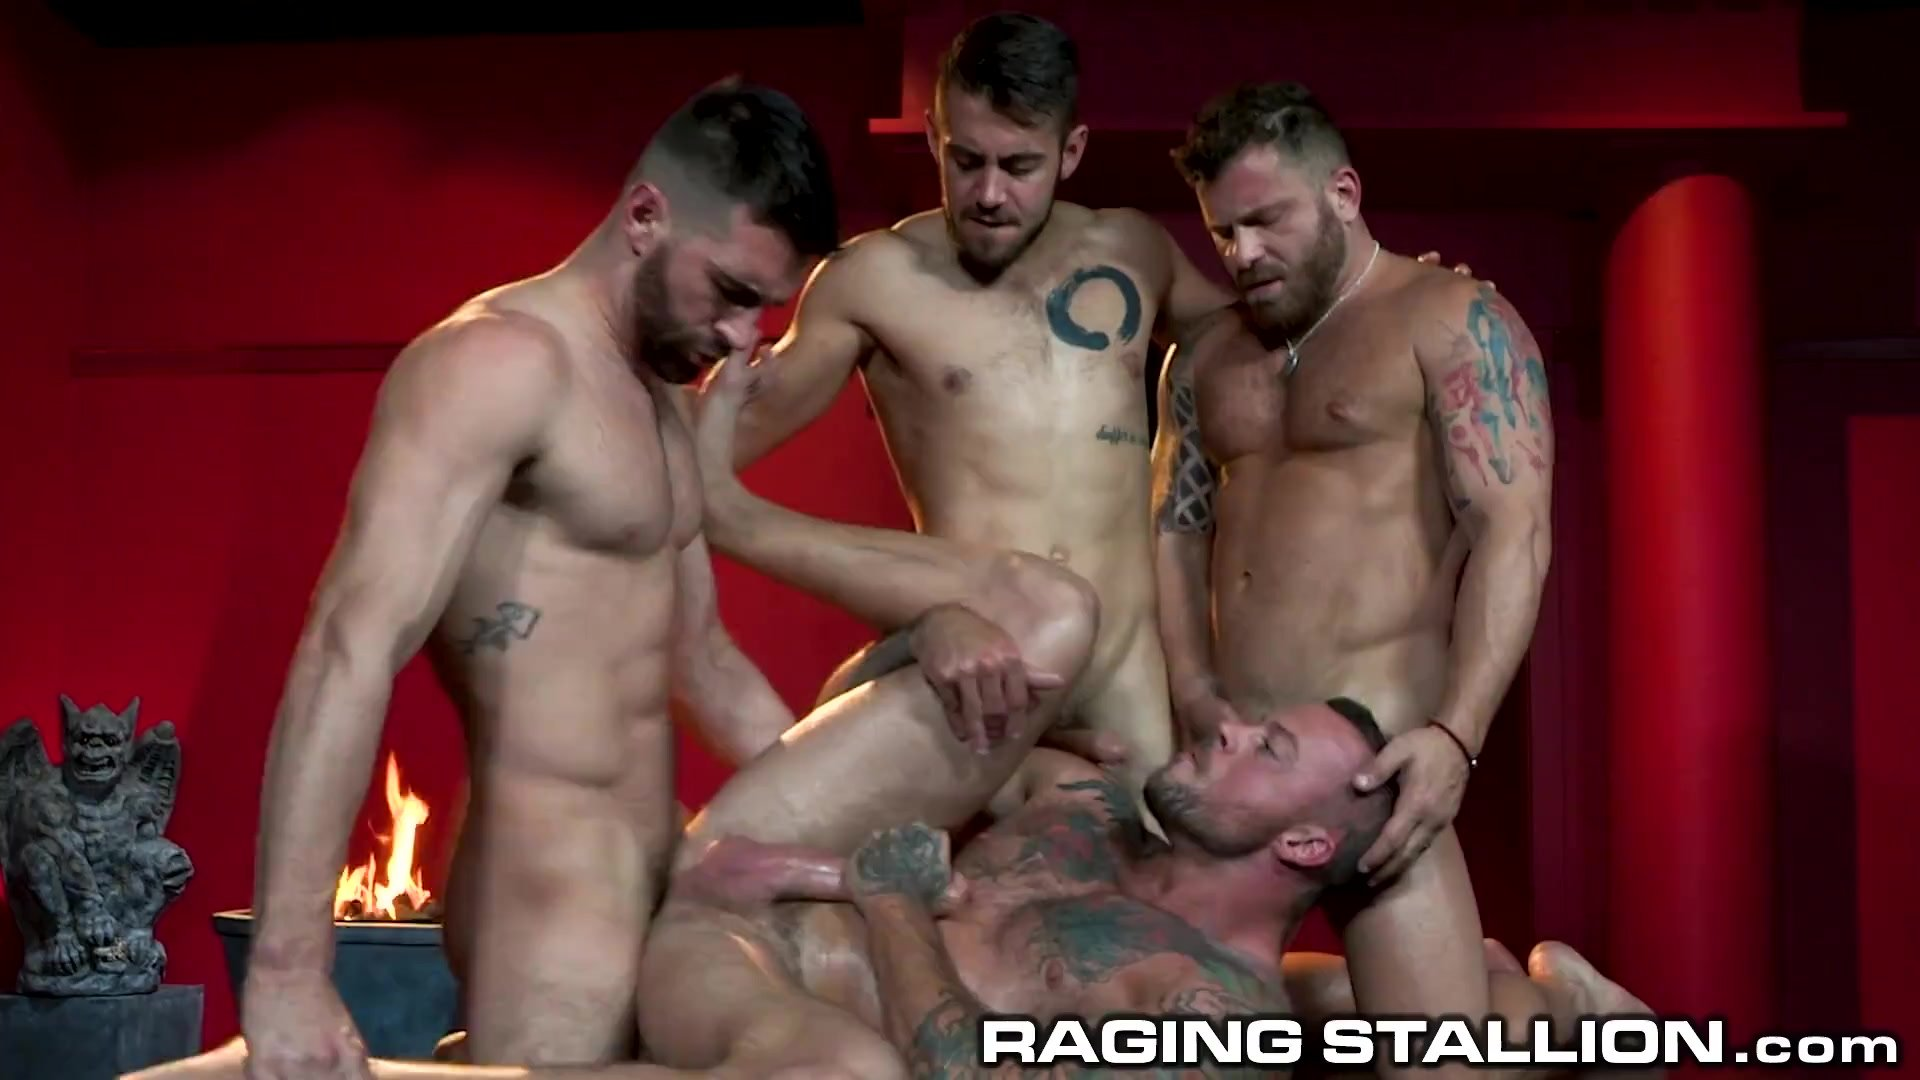 RagingStallion - Hot Orgy With 4 Muscle Hunks with Big Cocks